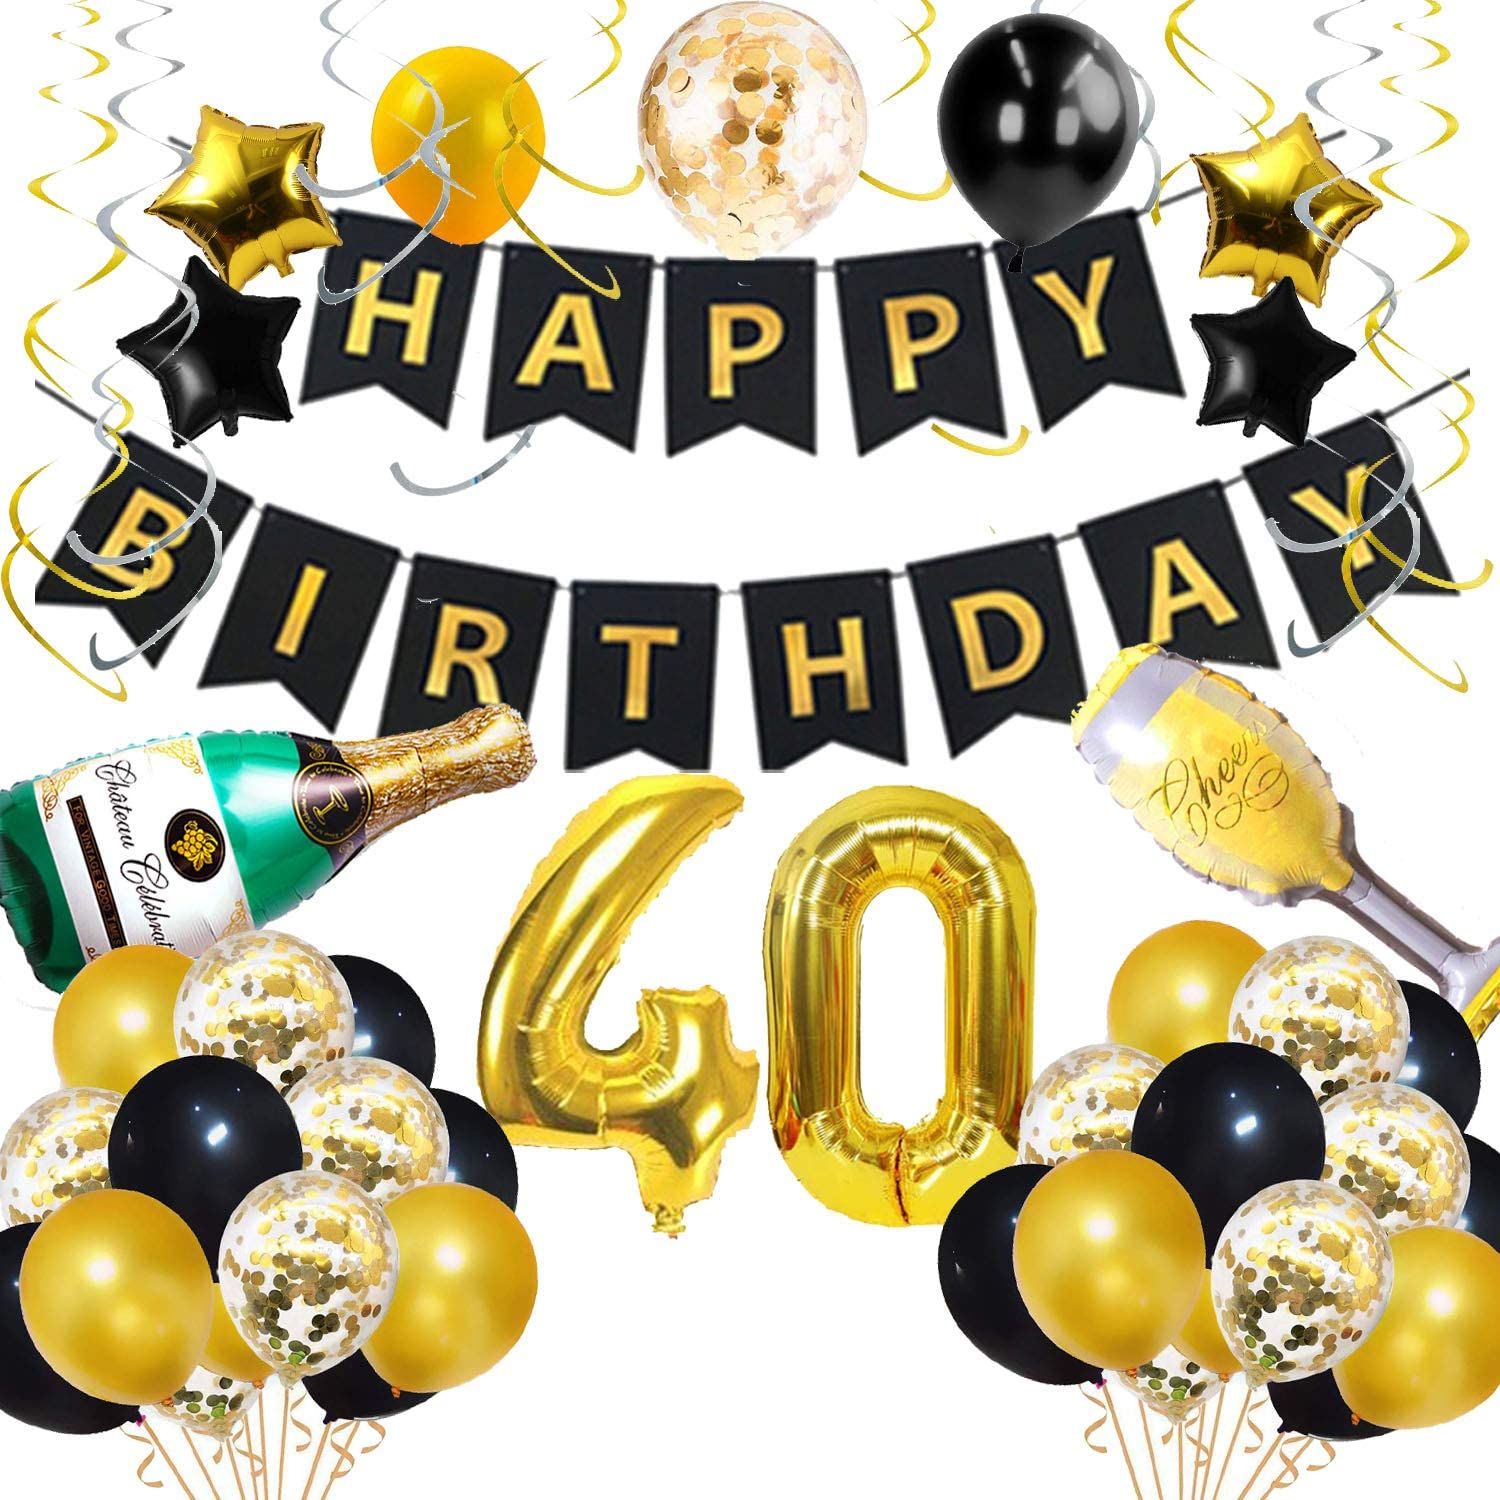 Amazon Com 40th Birthday Decorations For Her Him Men Women Happy Birthday Banner Number 40 Balloons Kit Black Gold Hanging Swirls Party Favors Supplies Gifts Cheers 40th Years Confetti Celebration Kitchen Dining